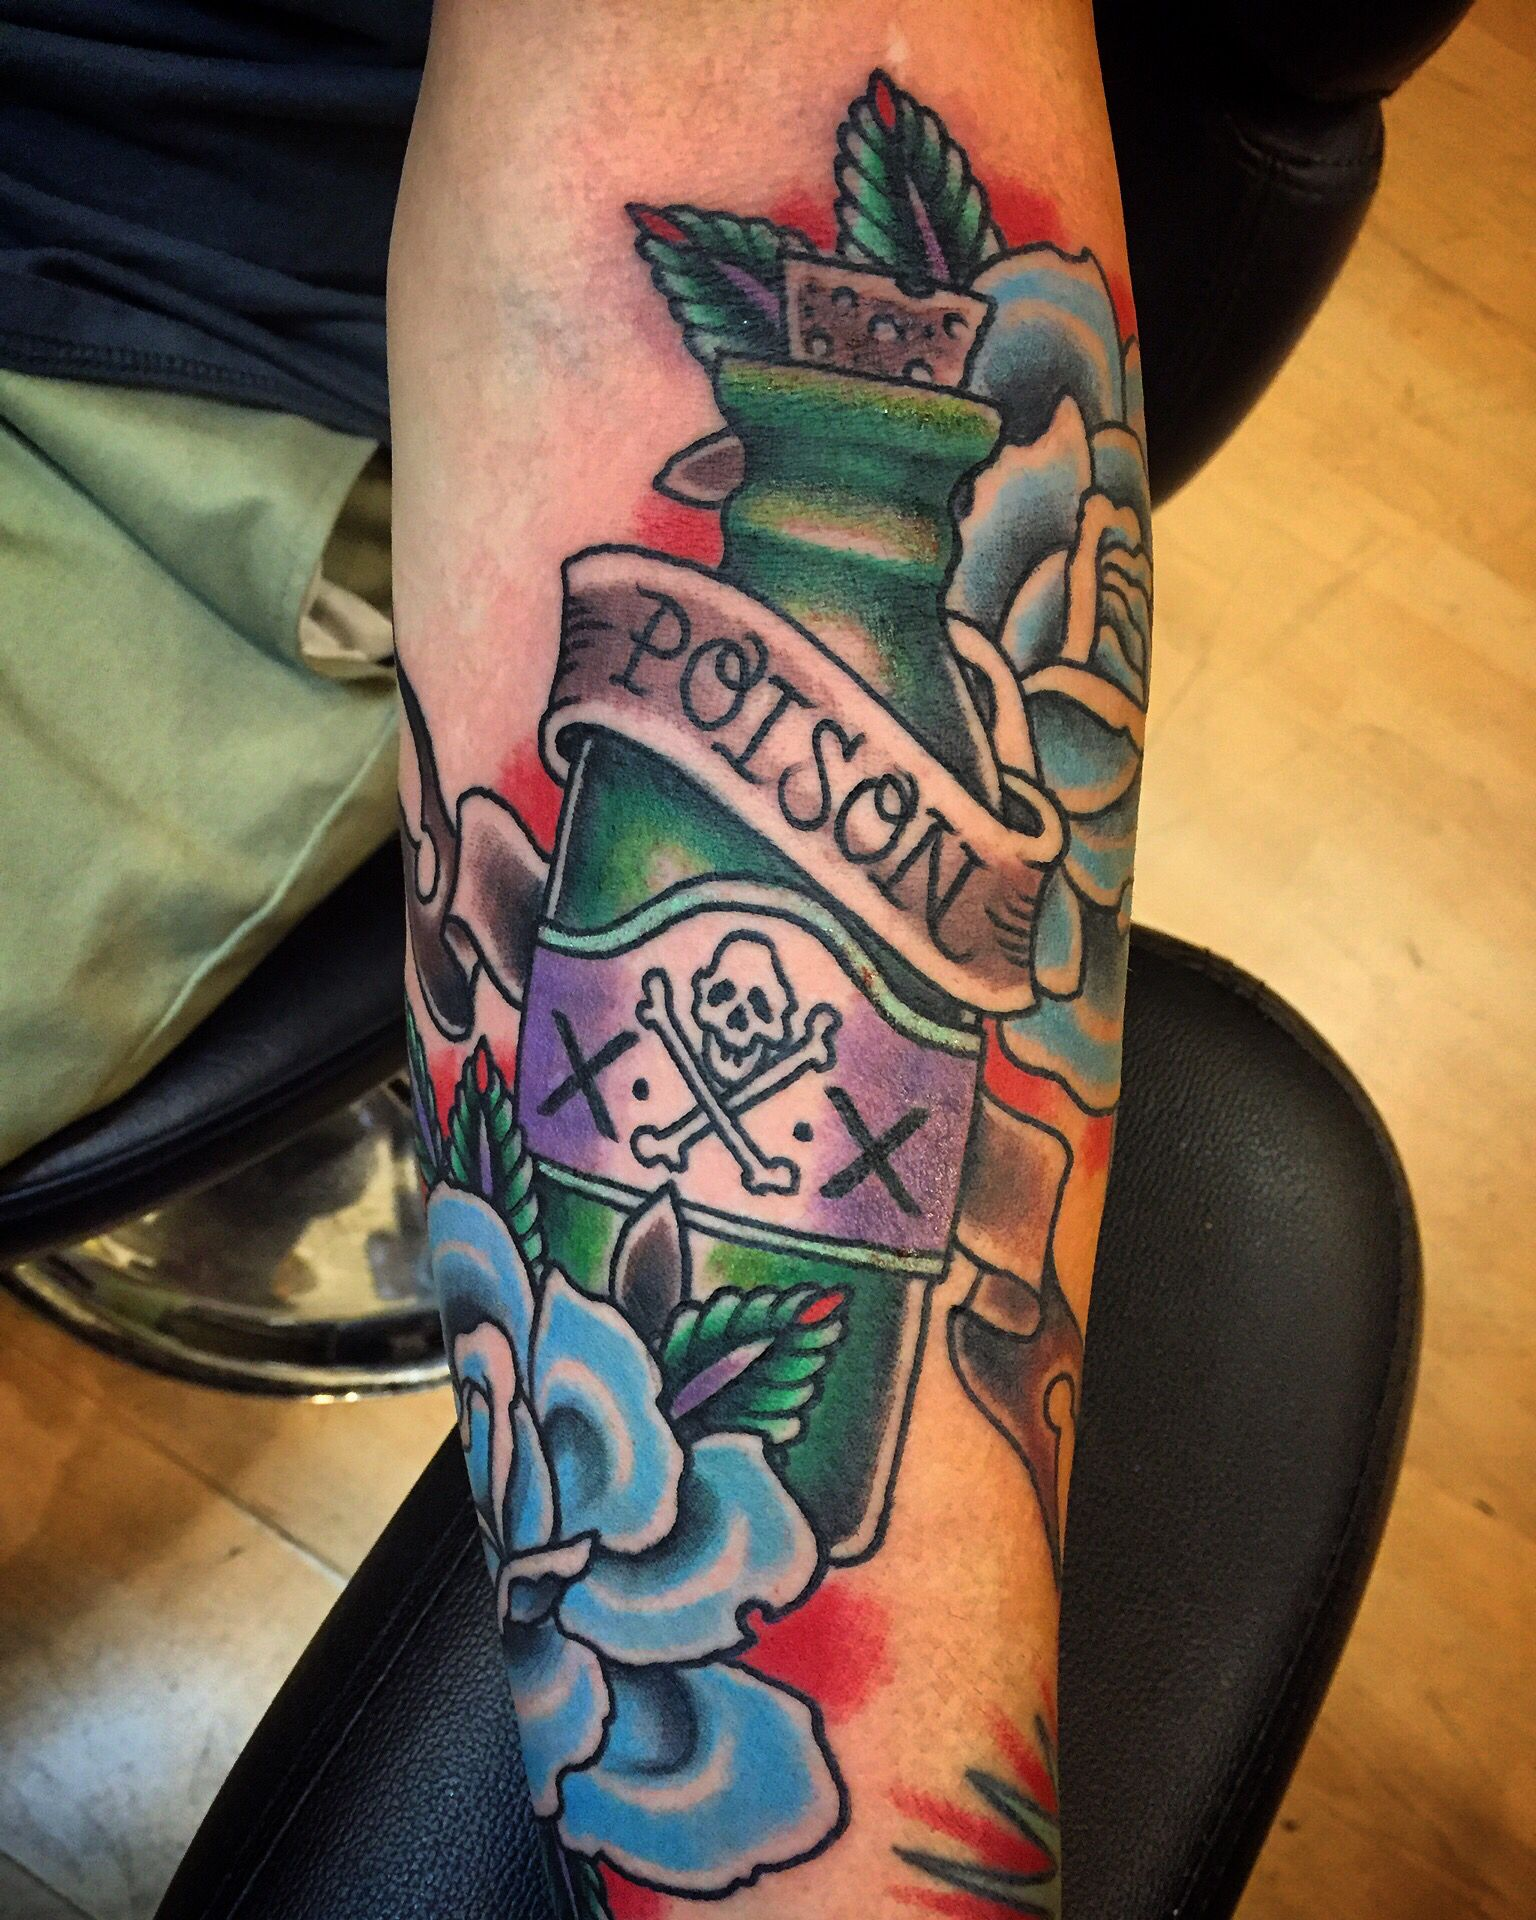 Small Bottle Tattoo: Poison Bottle Tattoo (With Images)